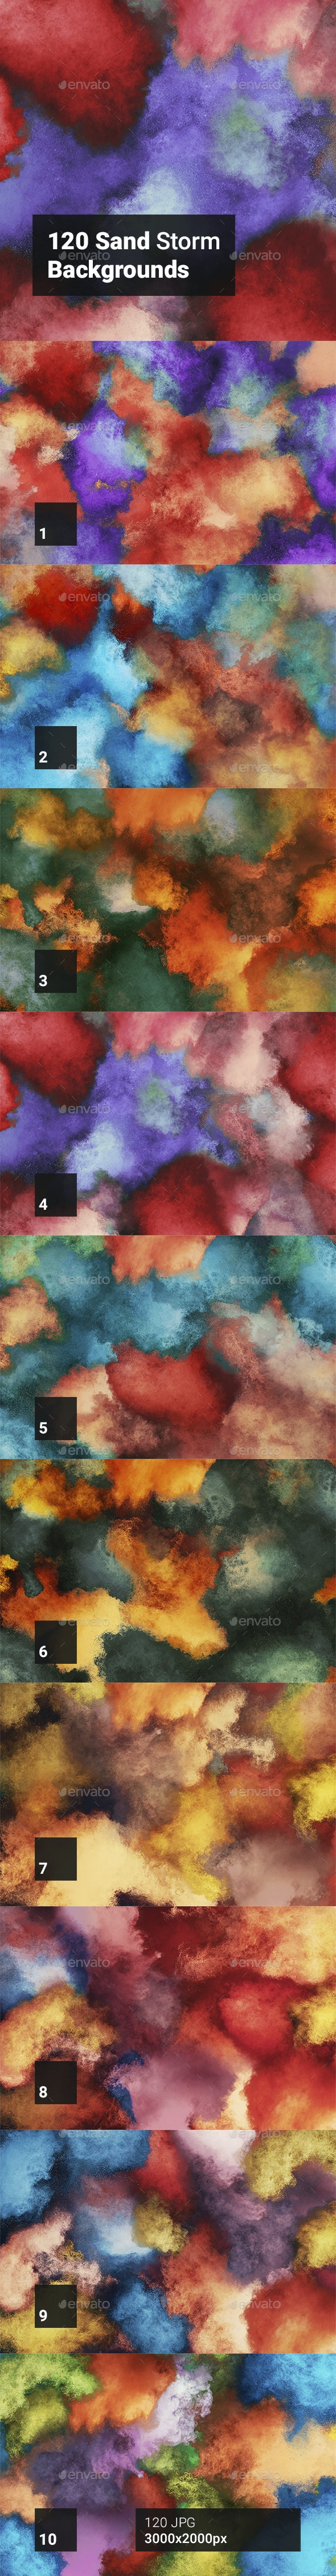 120 Sand Storm Backgrounds - Abstract Backgrounds